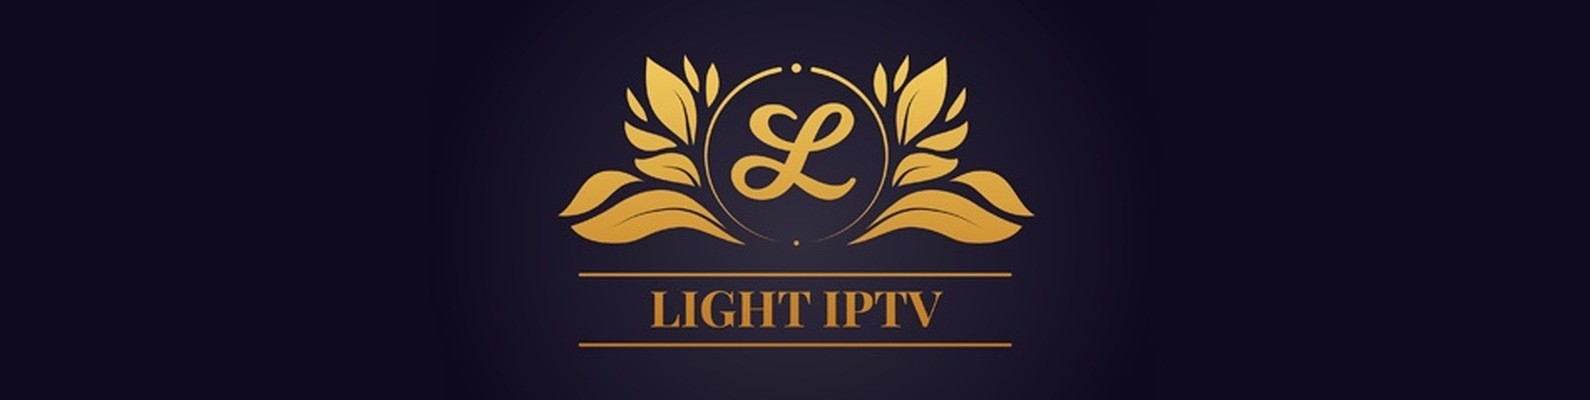 LightIPTV